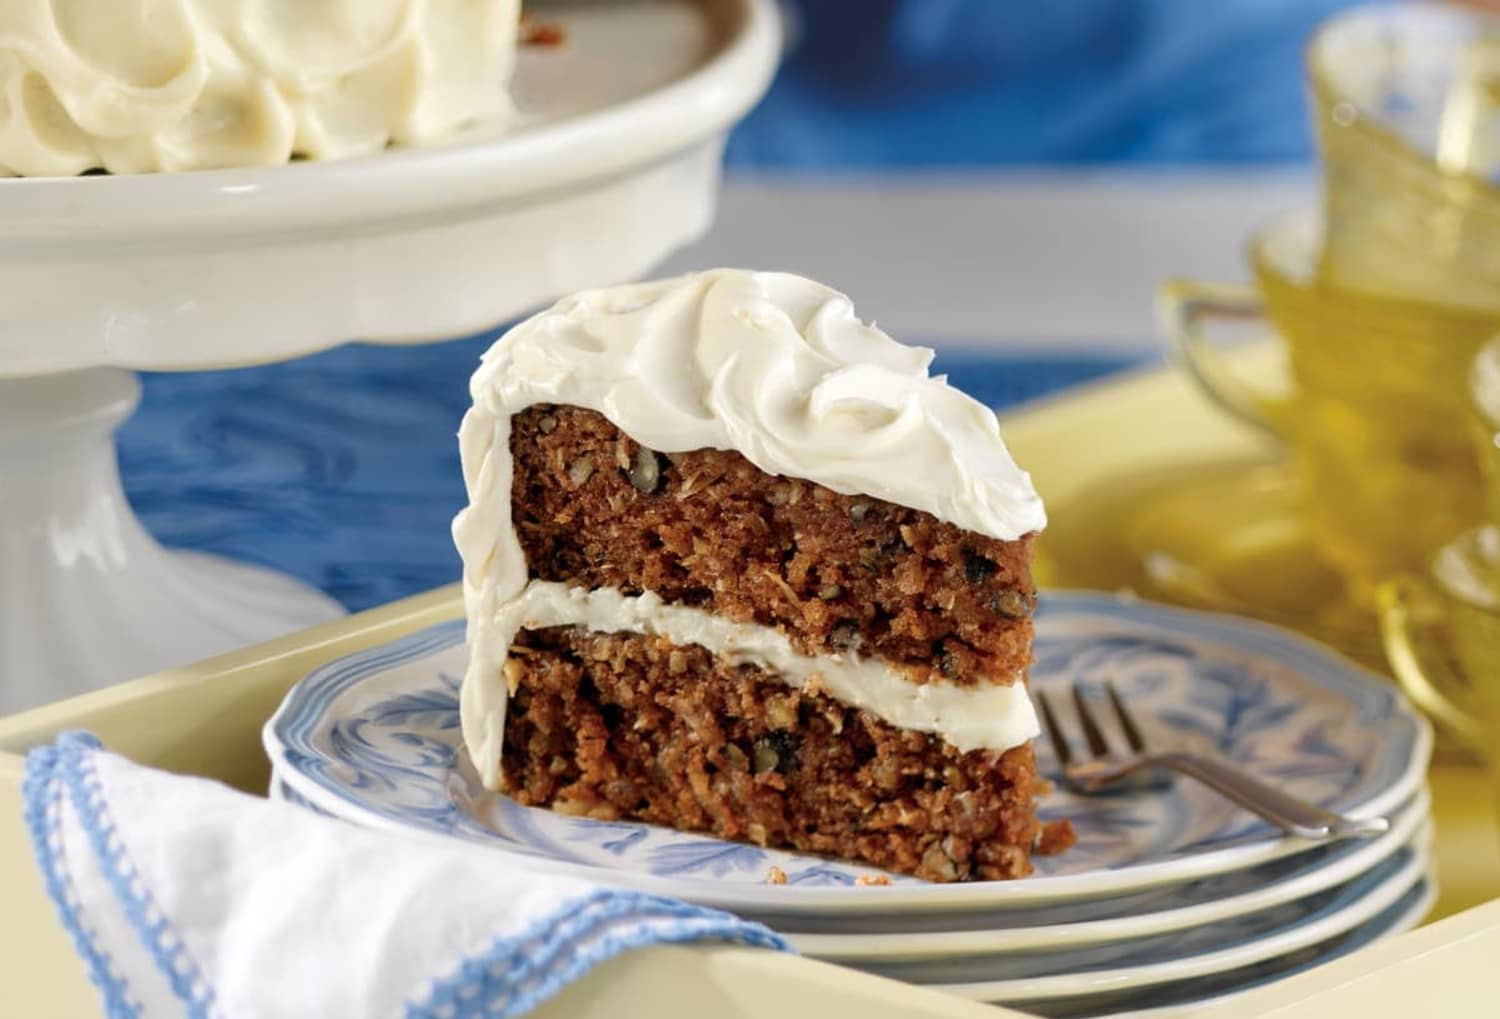 This Famous Carrot Cake Is the Star of Any Dessert Table